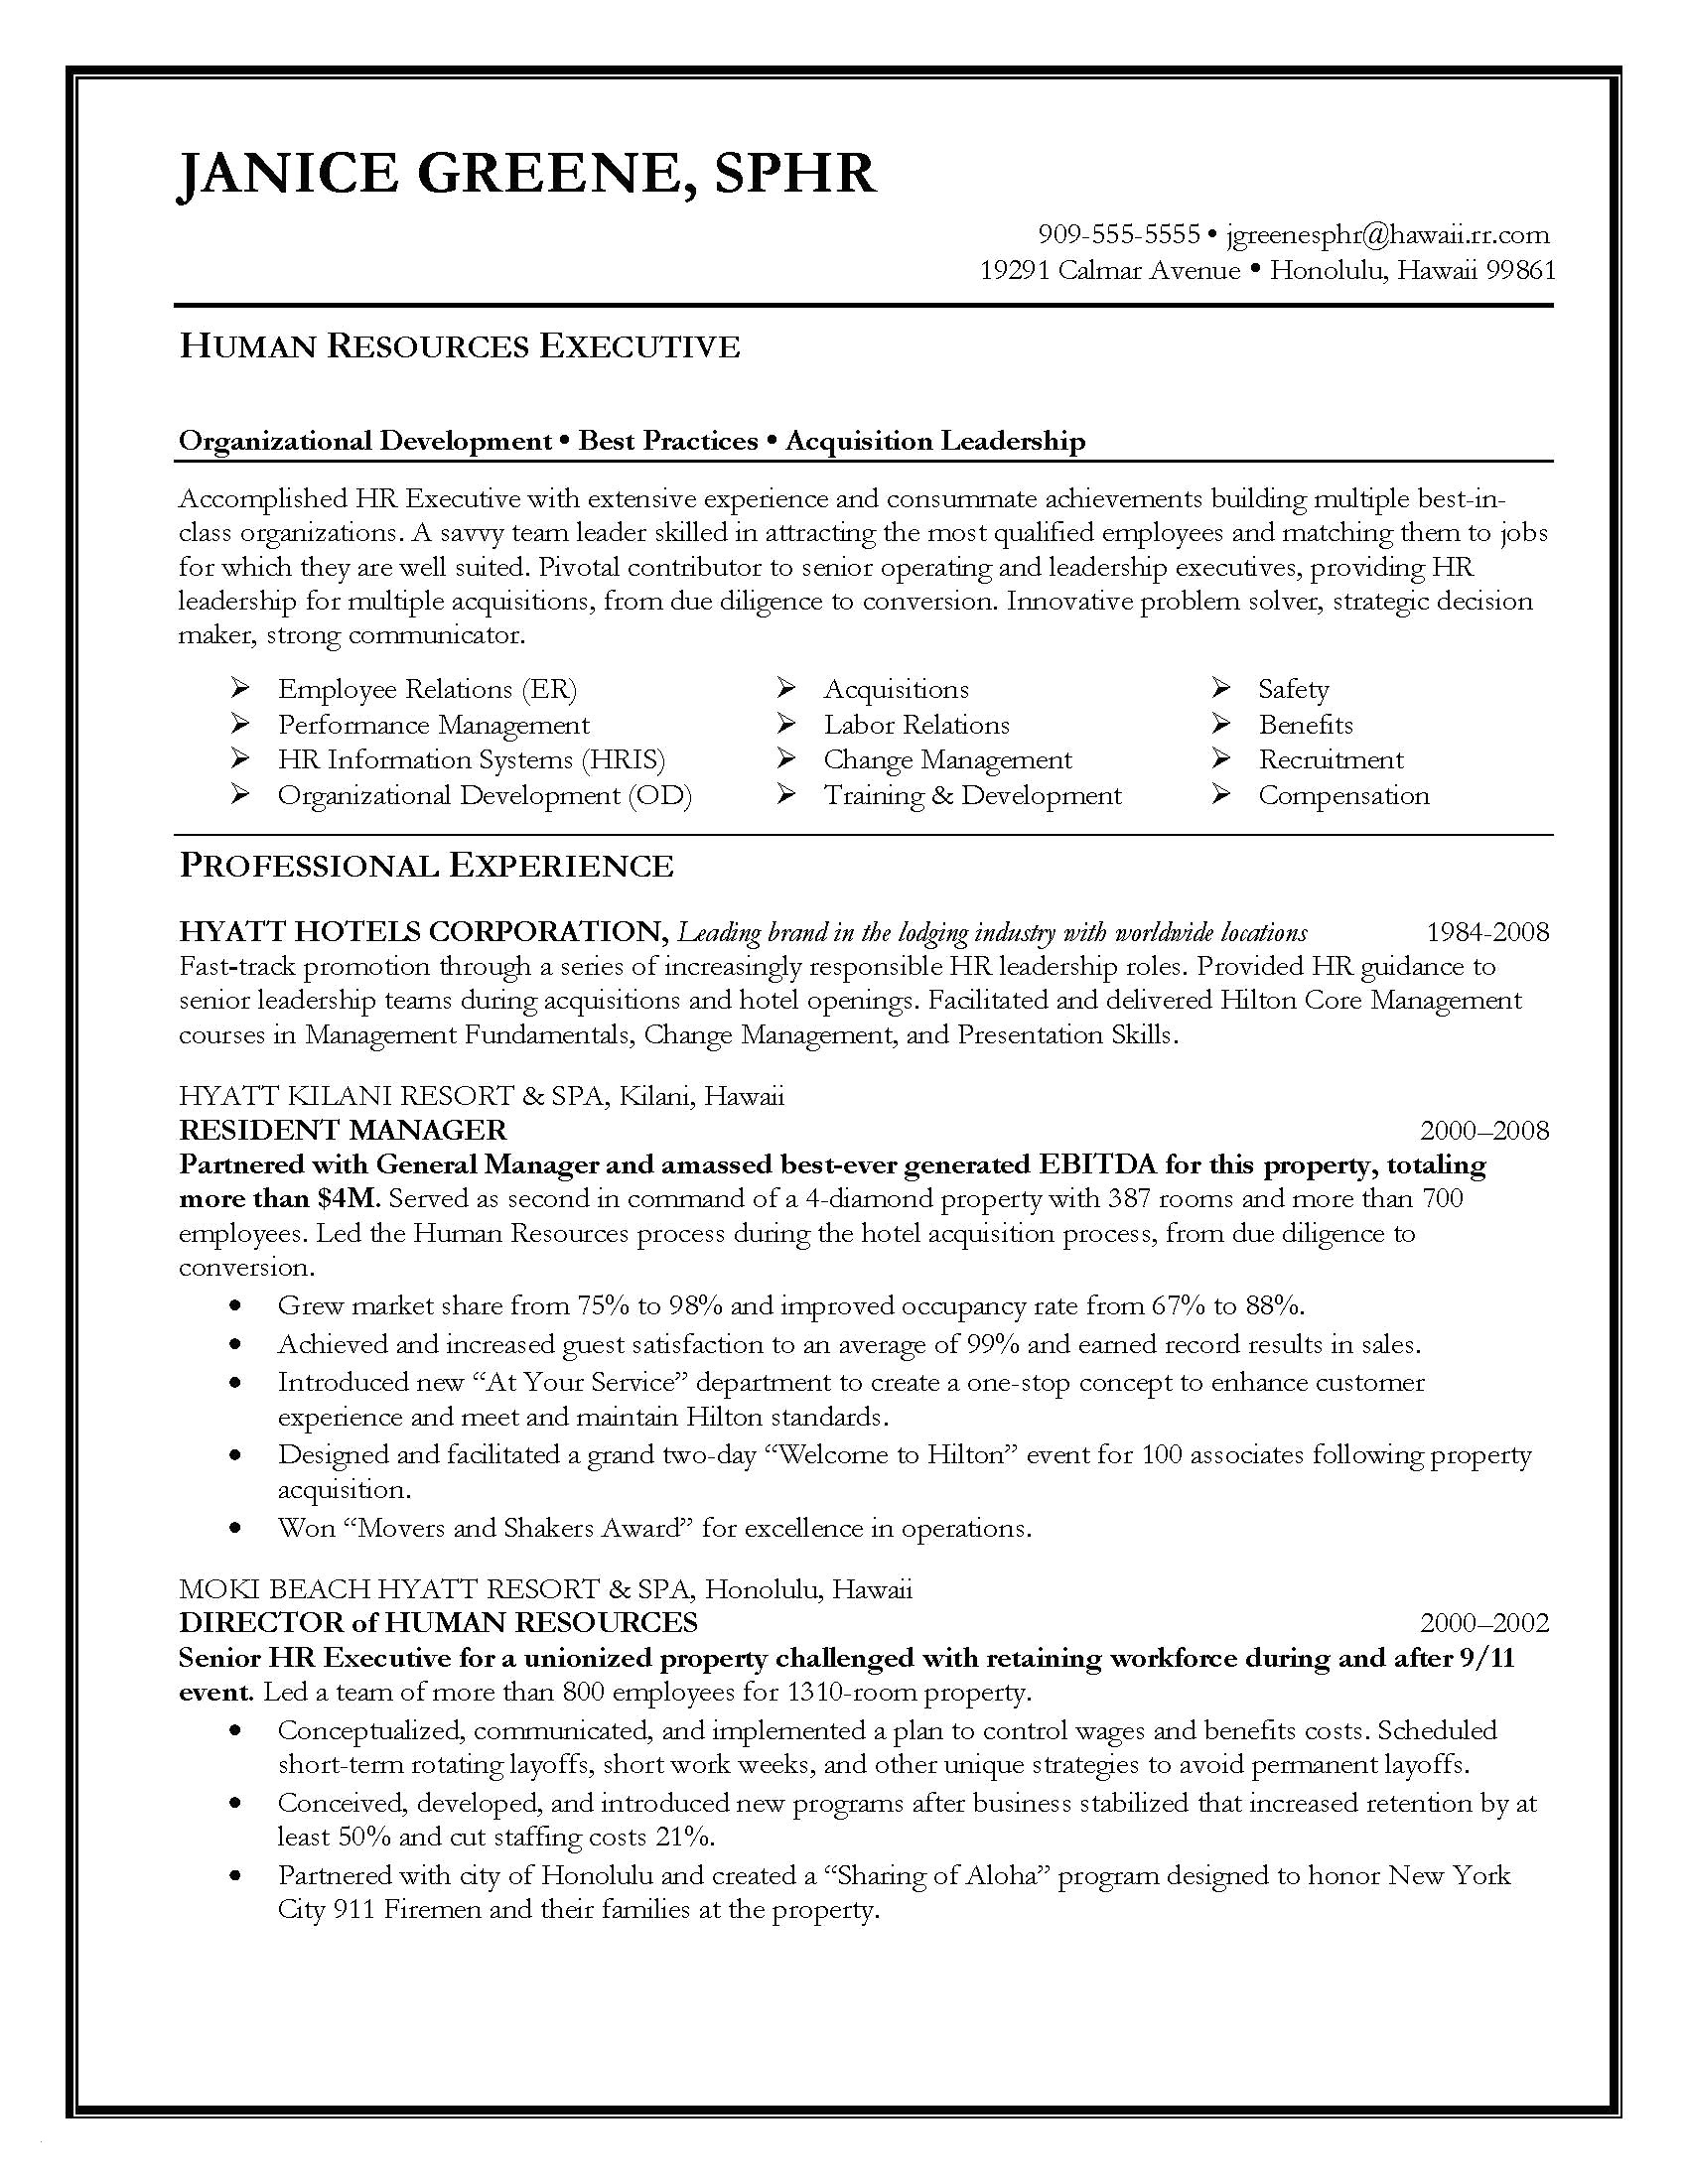 Human Resources Manager Resume - 49 Inspirational Manager Resume Sample